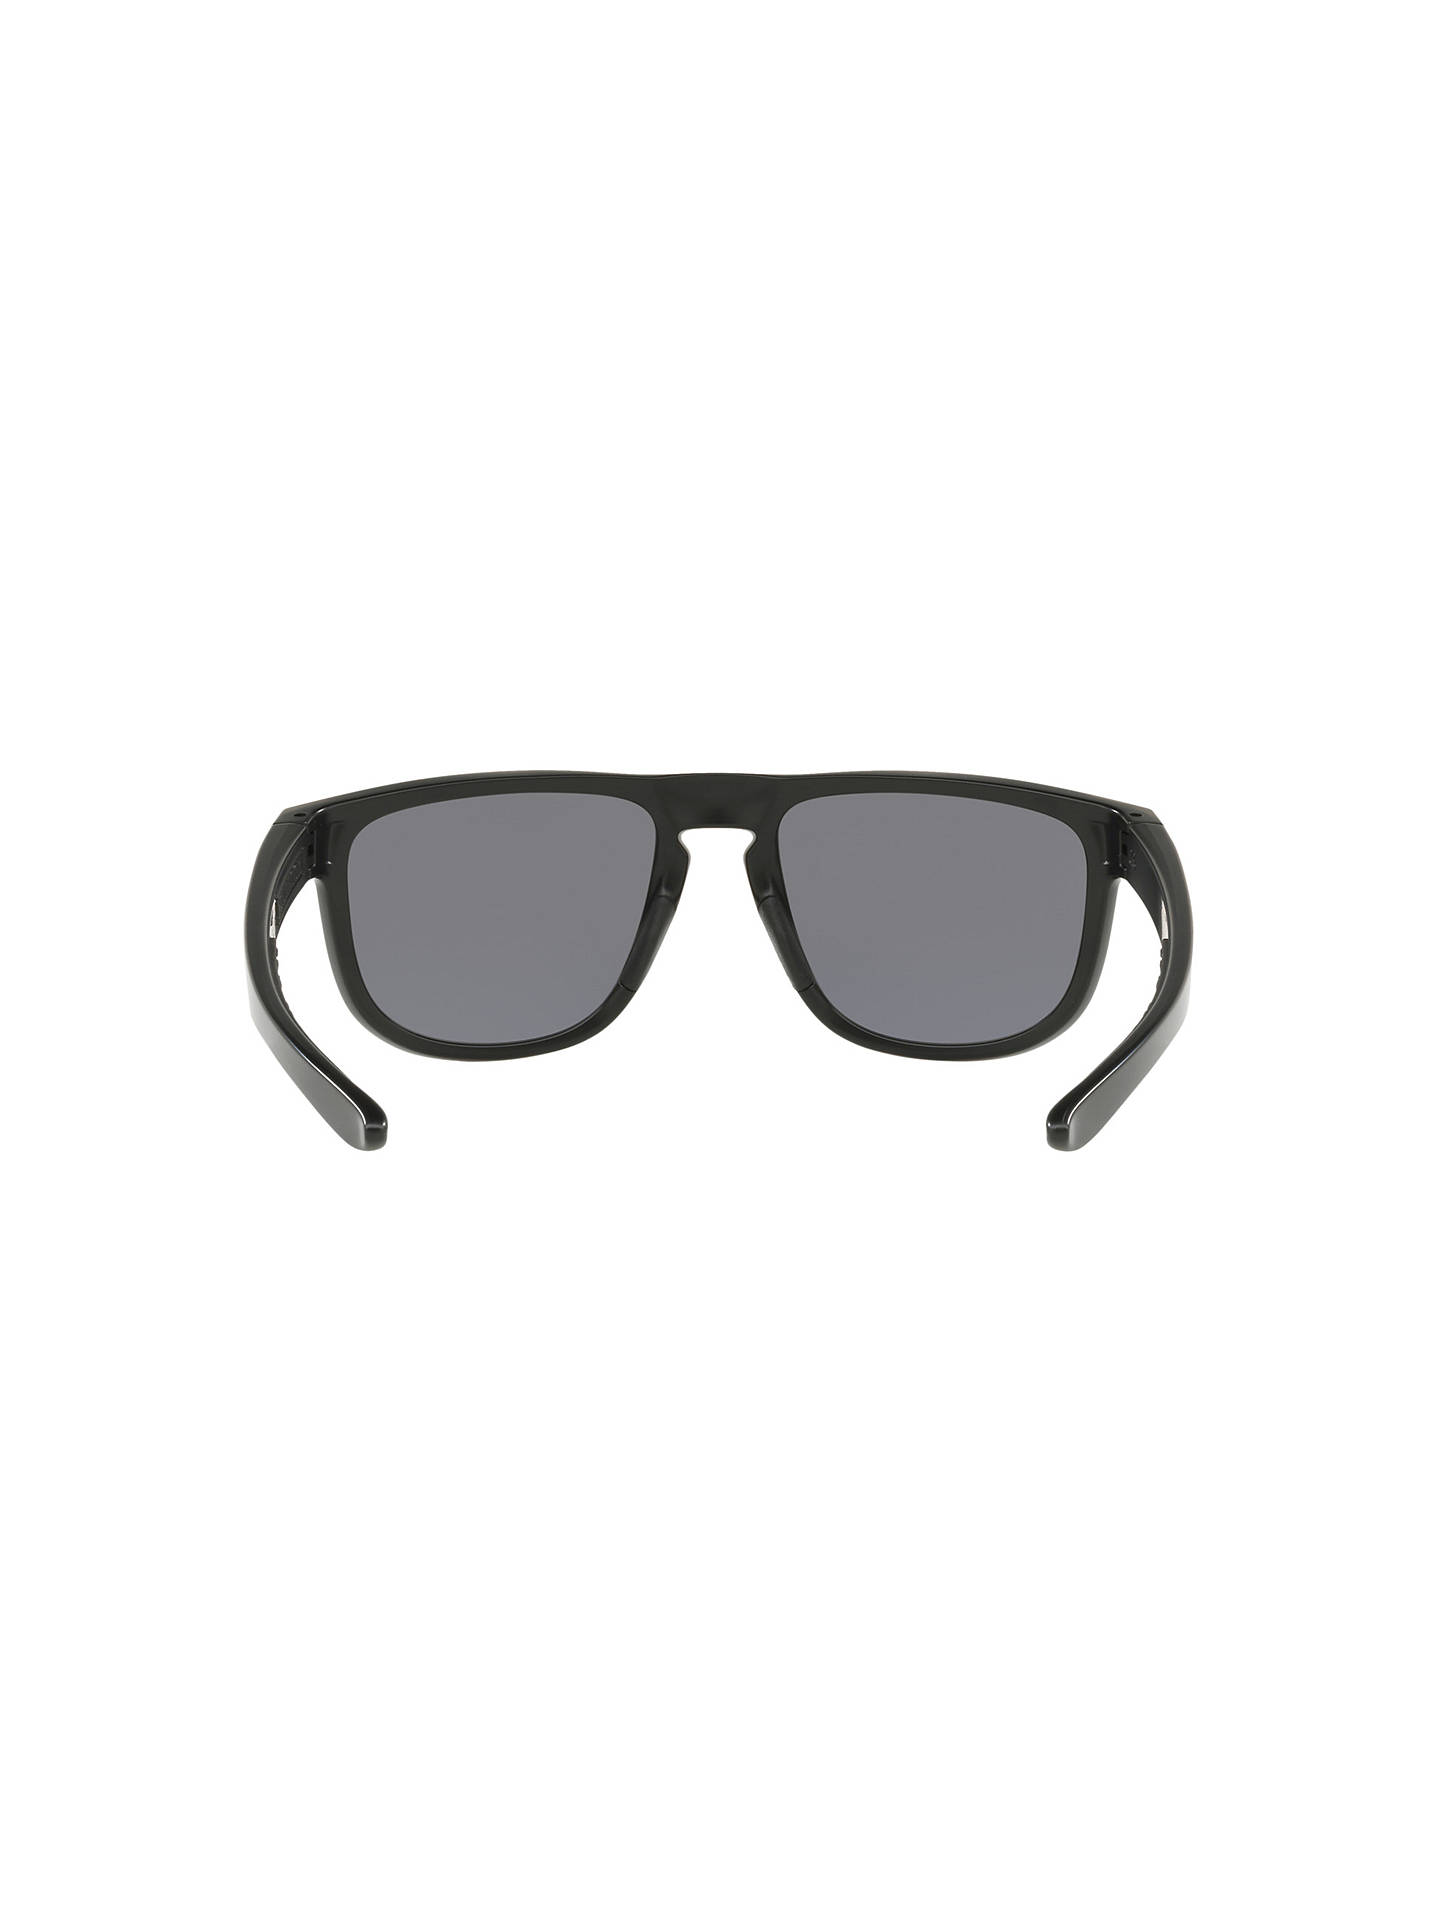 BuyOakley OO9377 Holbrook R Square Sunglasses, Black Online at johnlewis.com